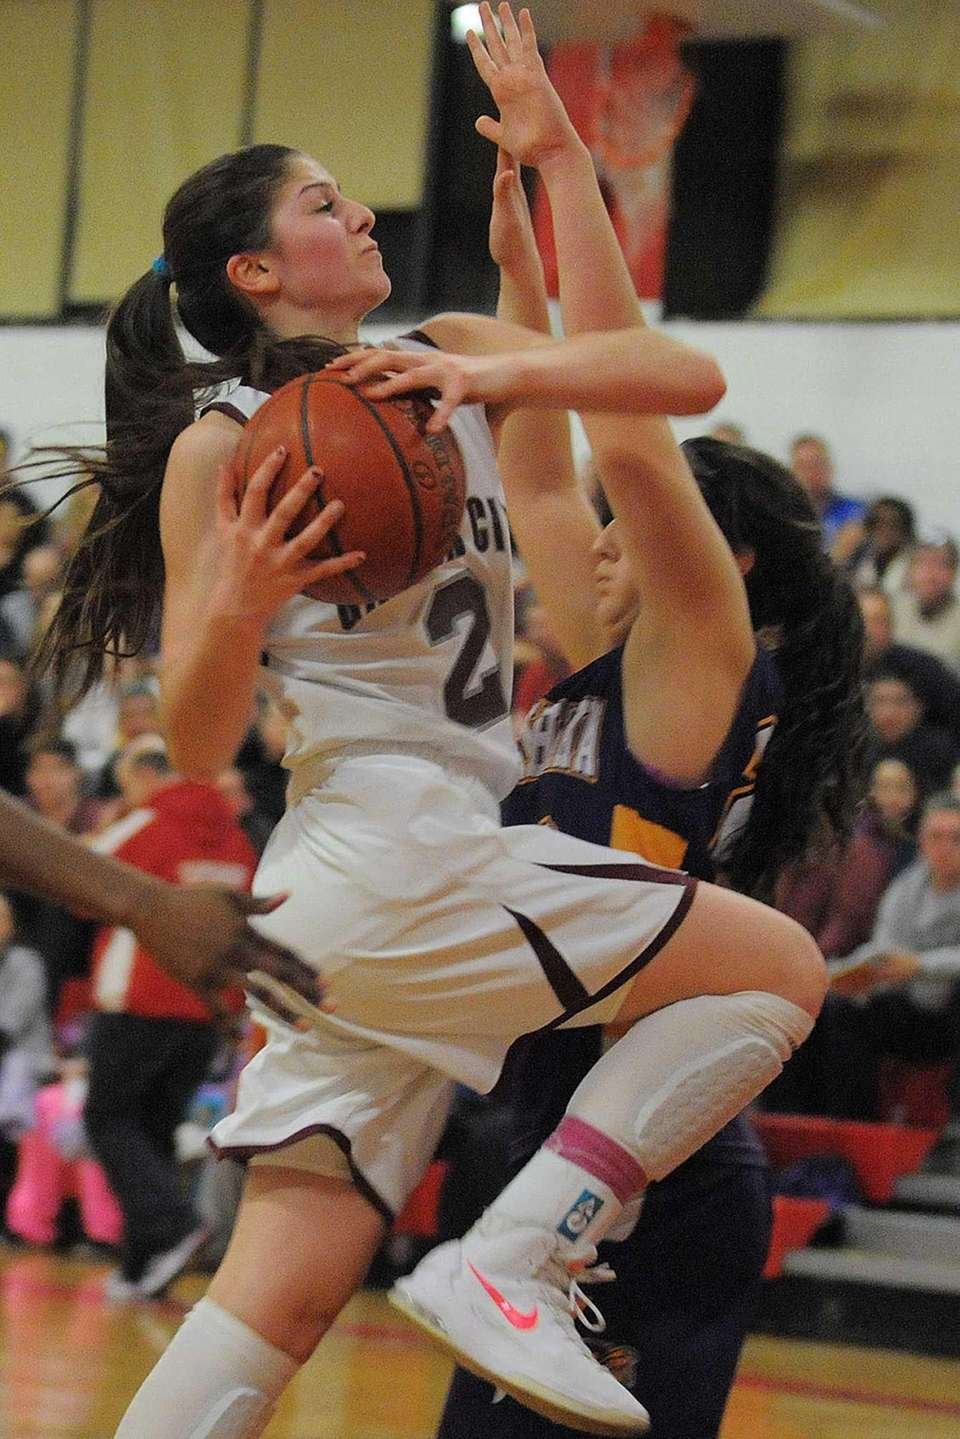 Garden City's Samantha Auricchio draws a foul during